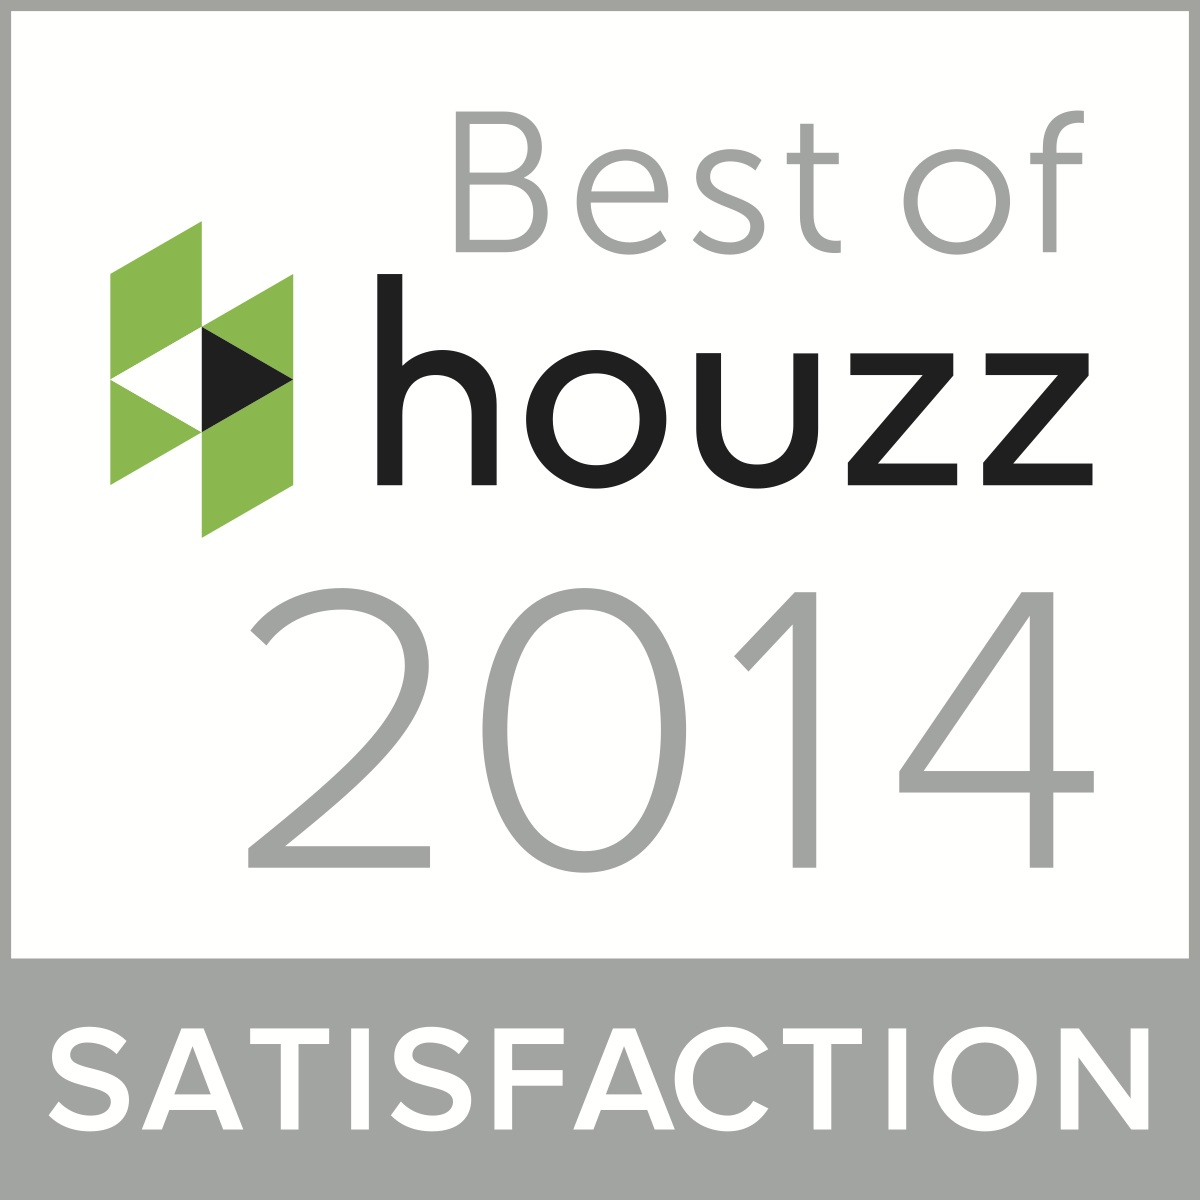 best of houzz badge 2014 award